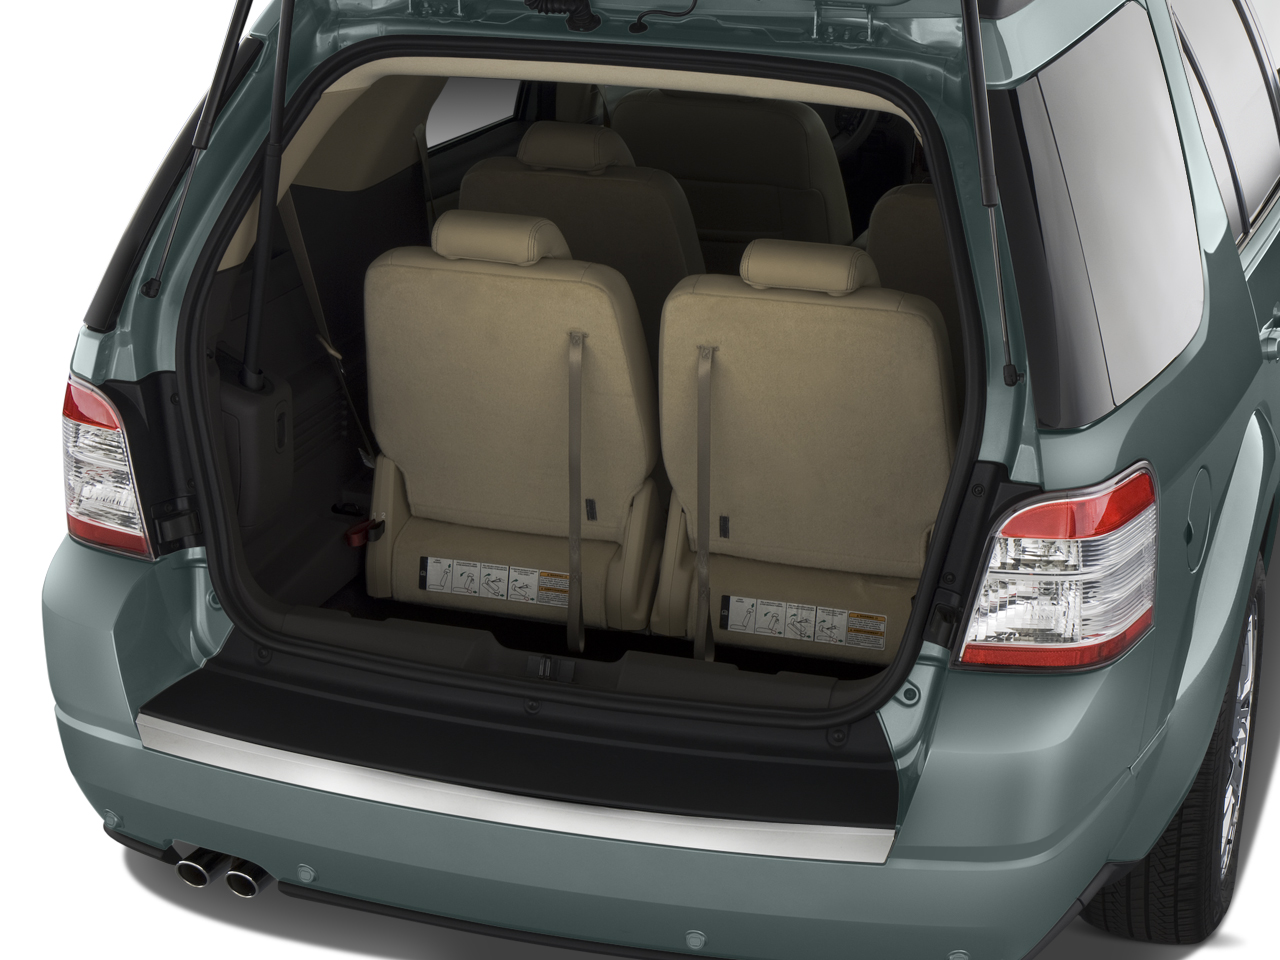 http://st.automobilemag.com/uploads/sites/10/2015/11/2008-ford-taurusx-limited-awd-suv-trunk.png